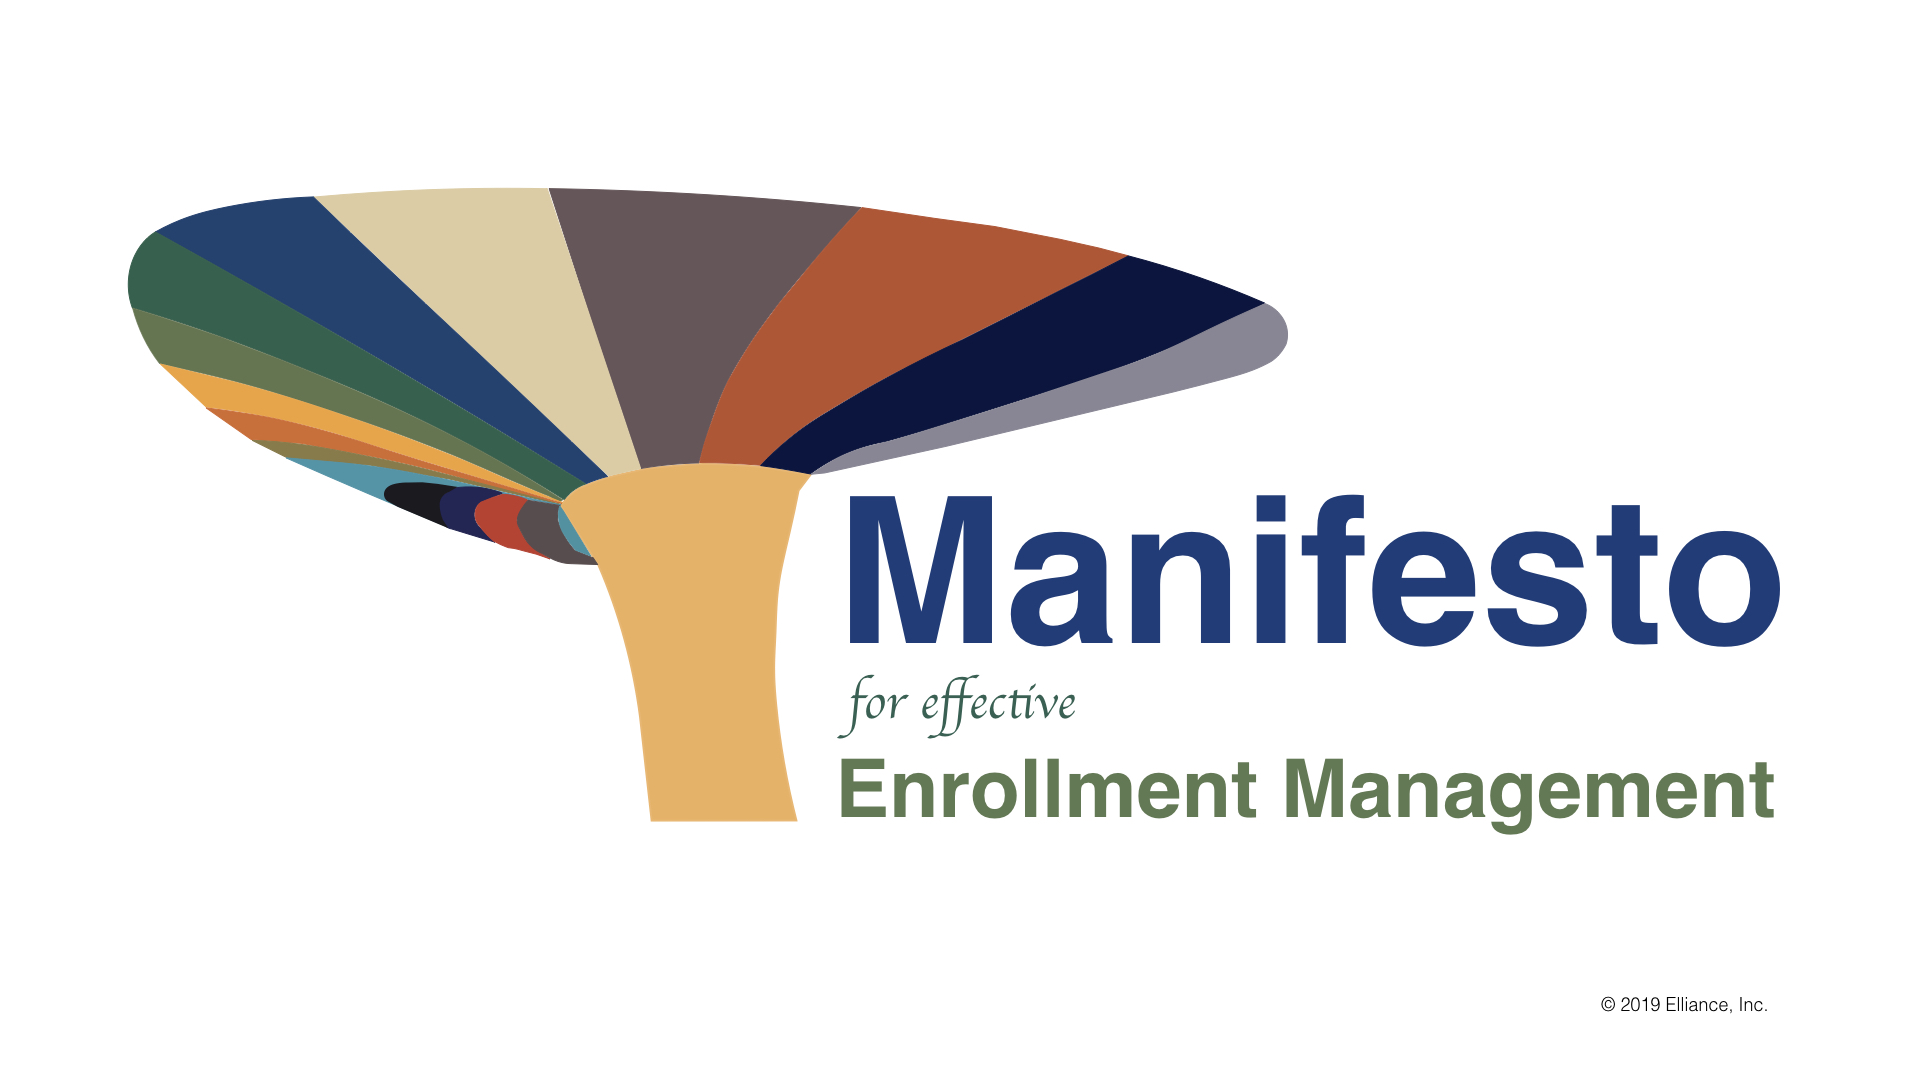 Manifesto for effective enrollment management